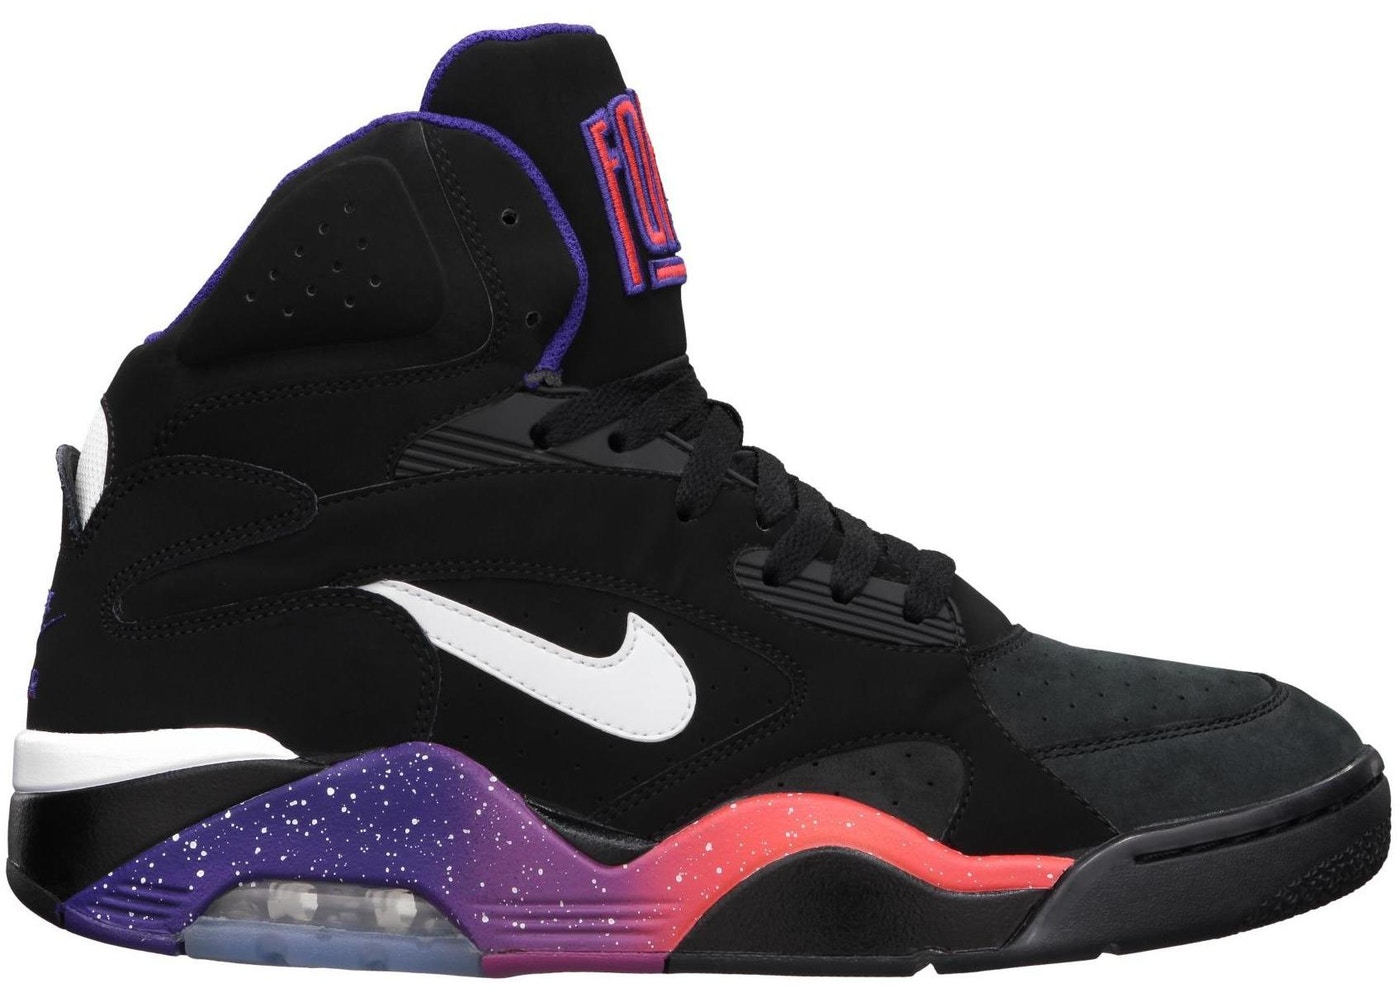 ... Air Force 180 Phoenix Suns Beautiful Design Nike ... 9706c88b030e